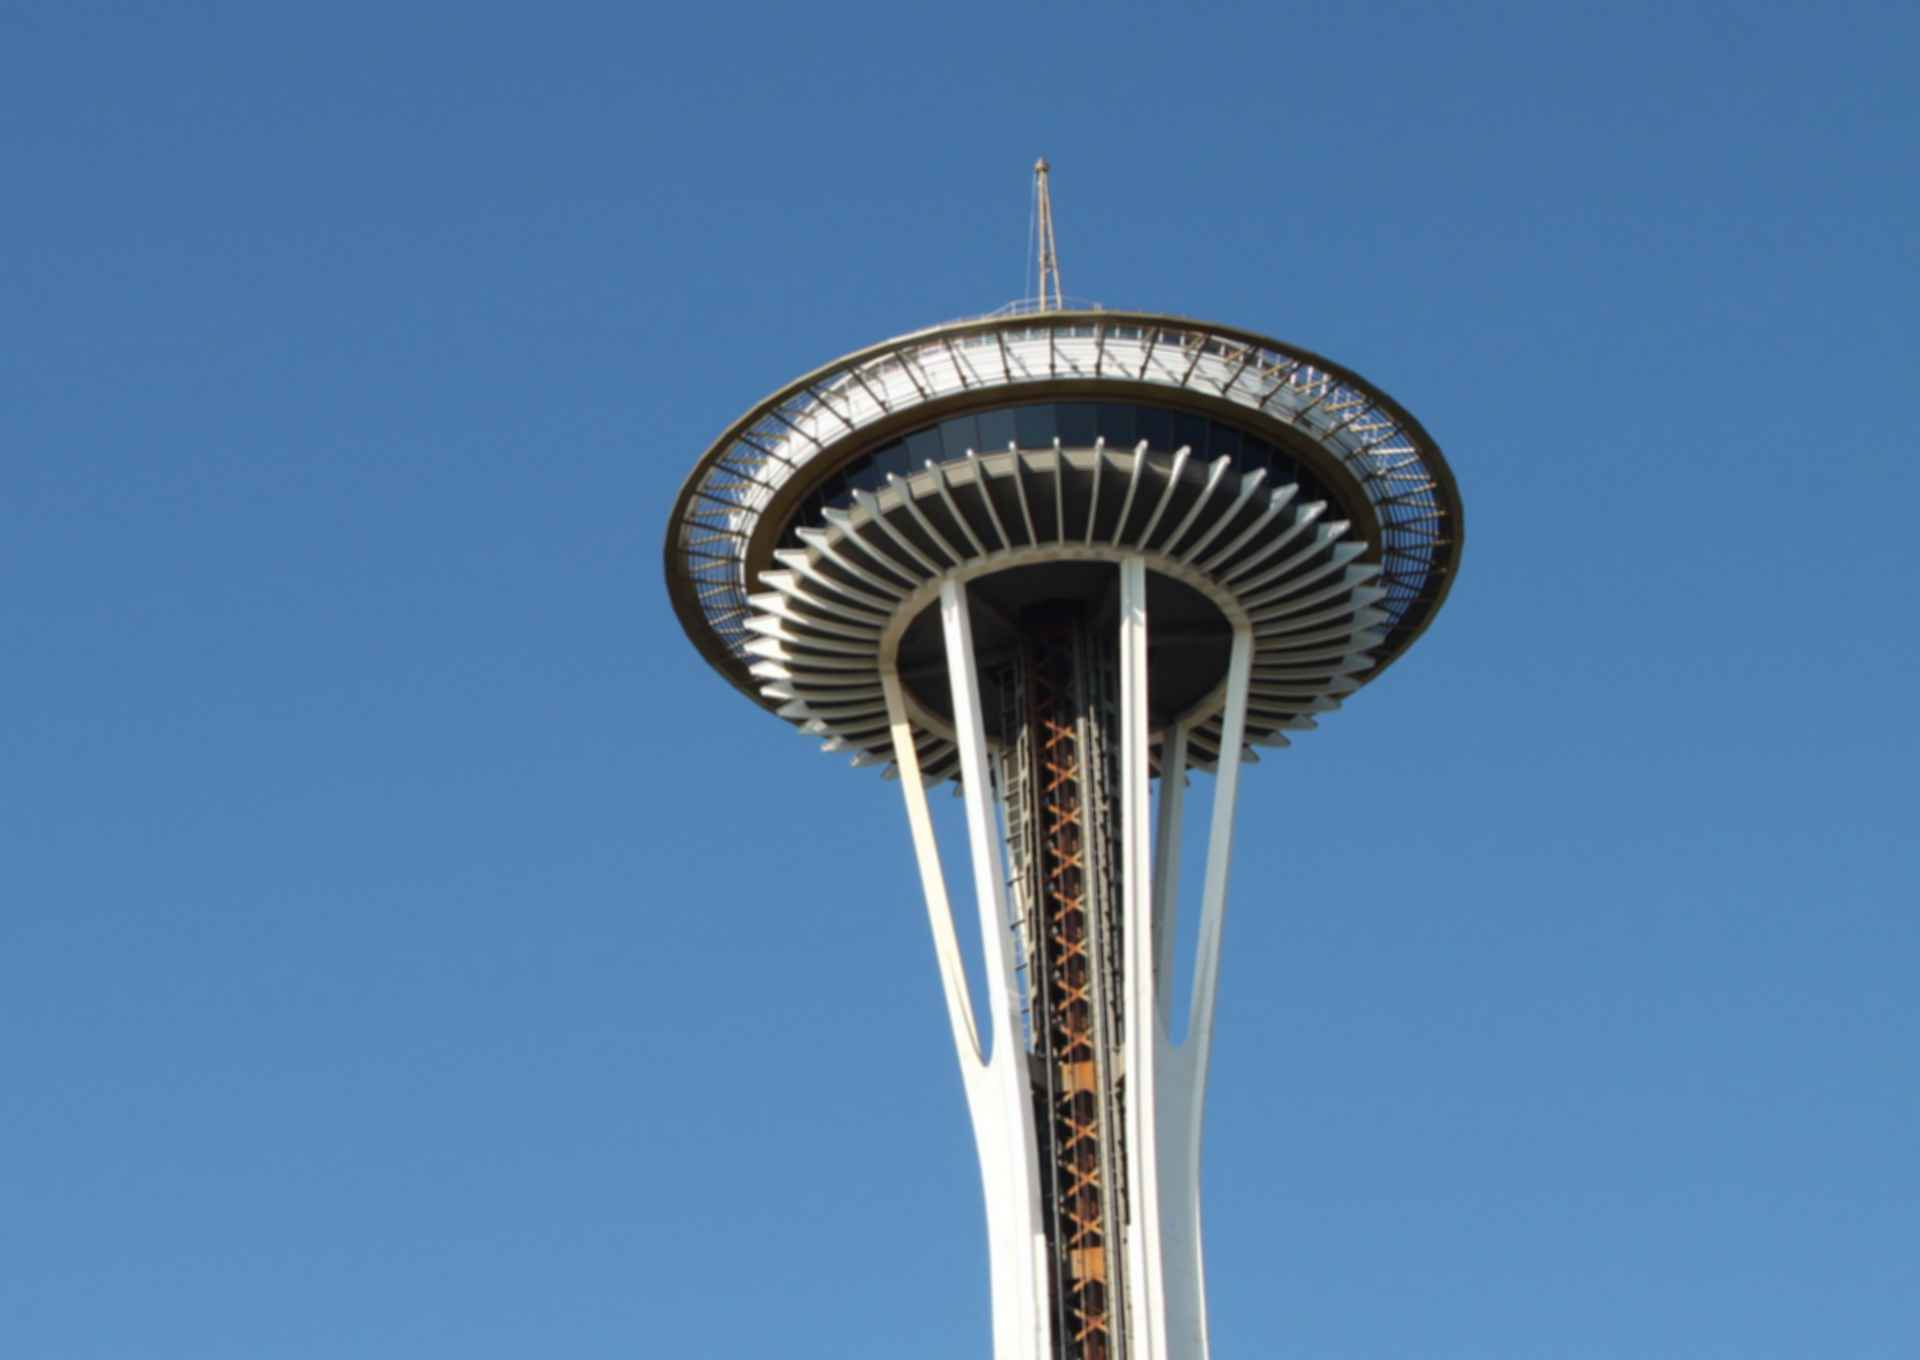 Space Needle - Observation Deck